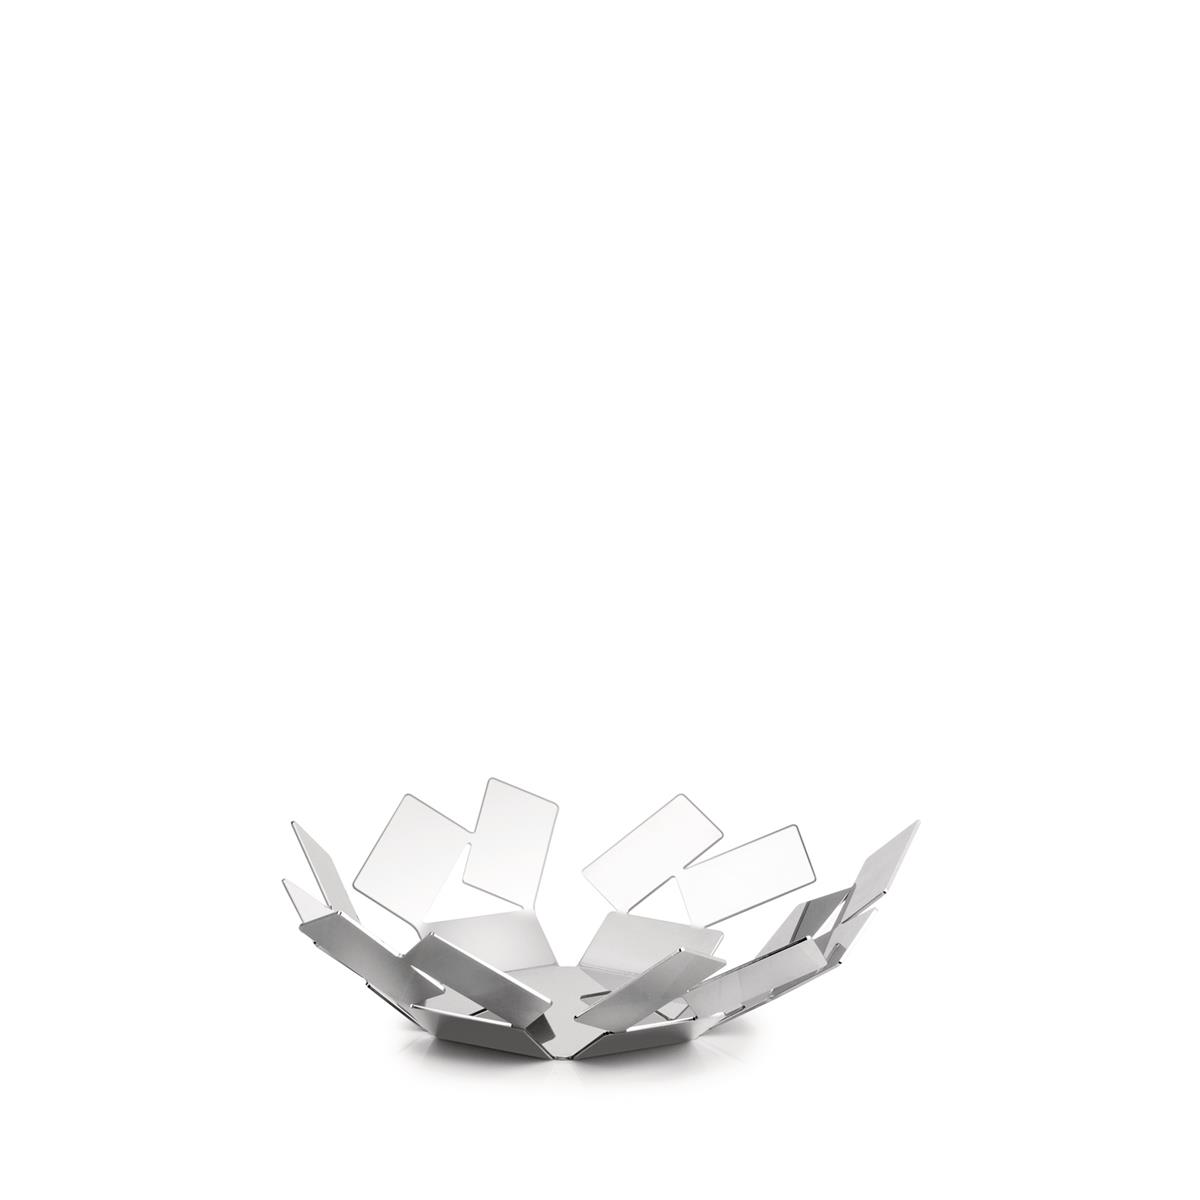 Alessi-CACTUS! Perforated fruit bowl in colored steel and resin, Super White-